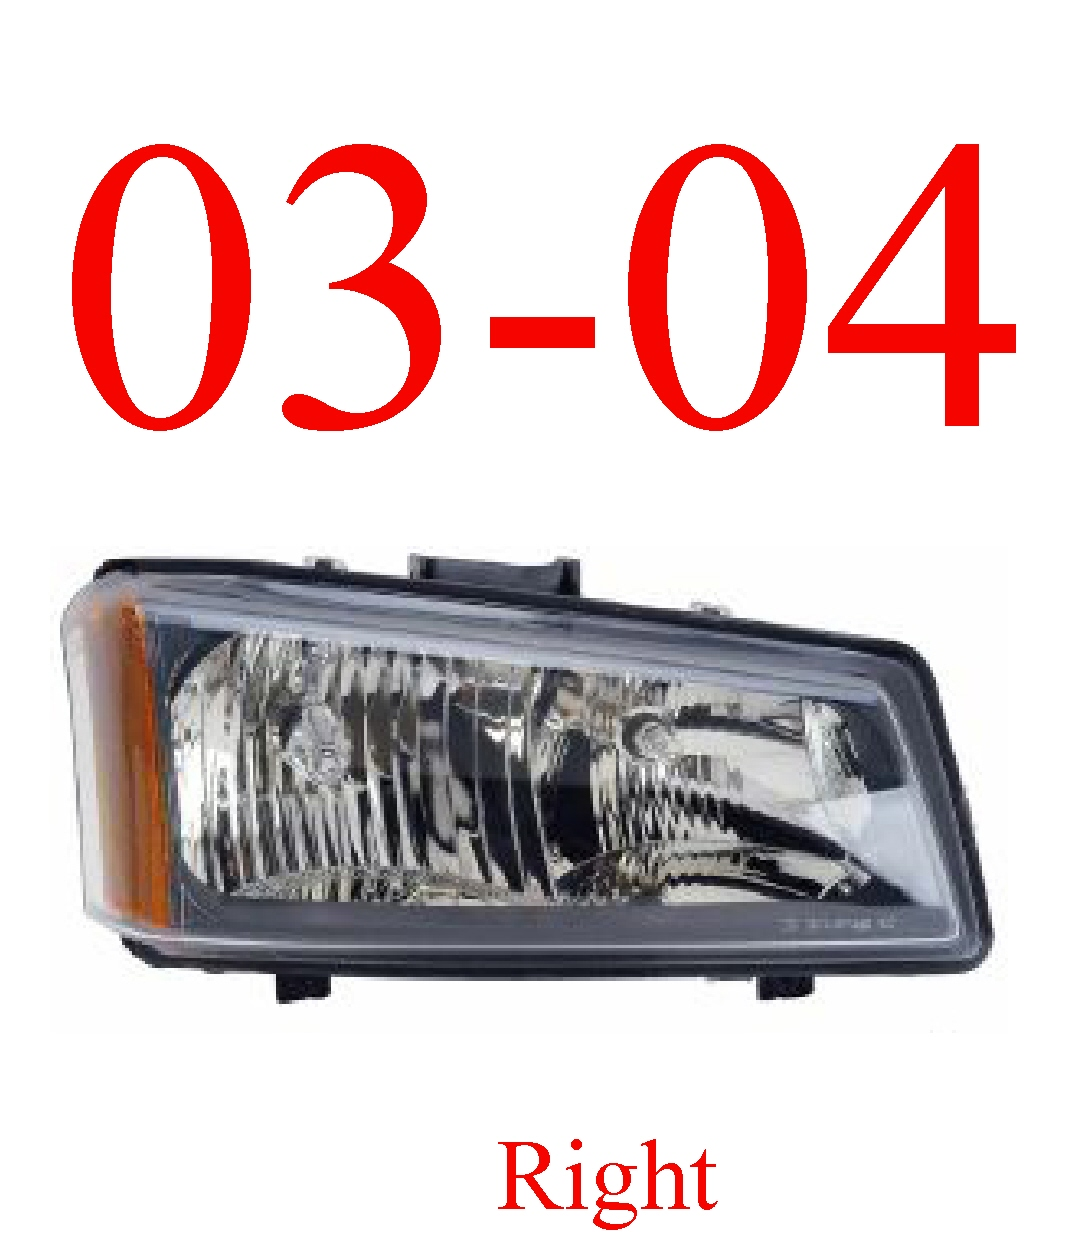 03-04 Chevy Right Head Light, Silverado, Avalanche